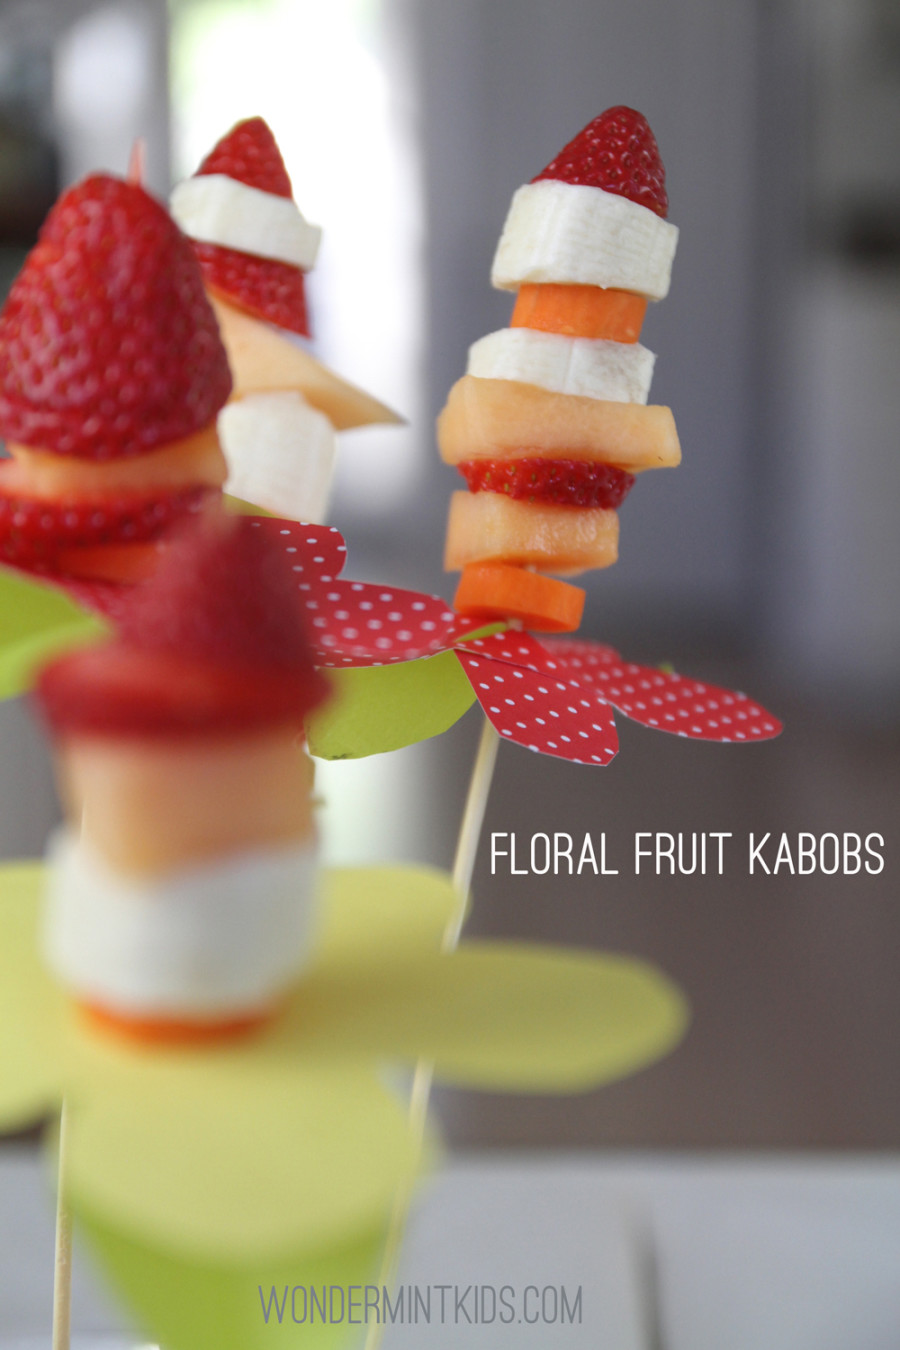 Another view of our kabobs!